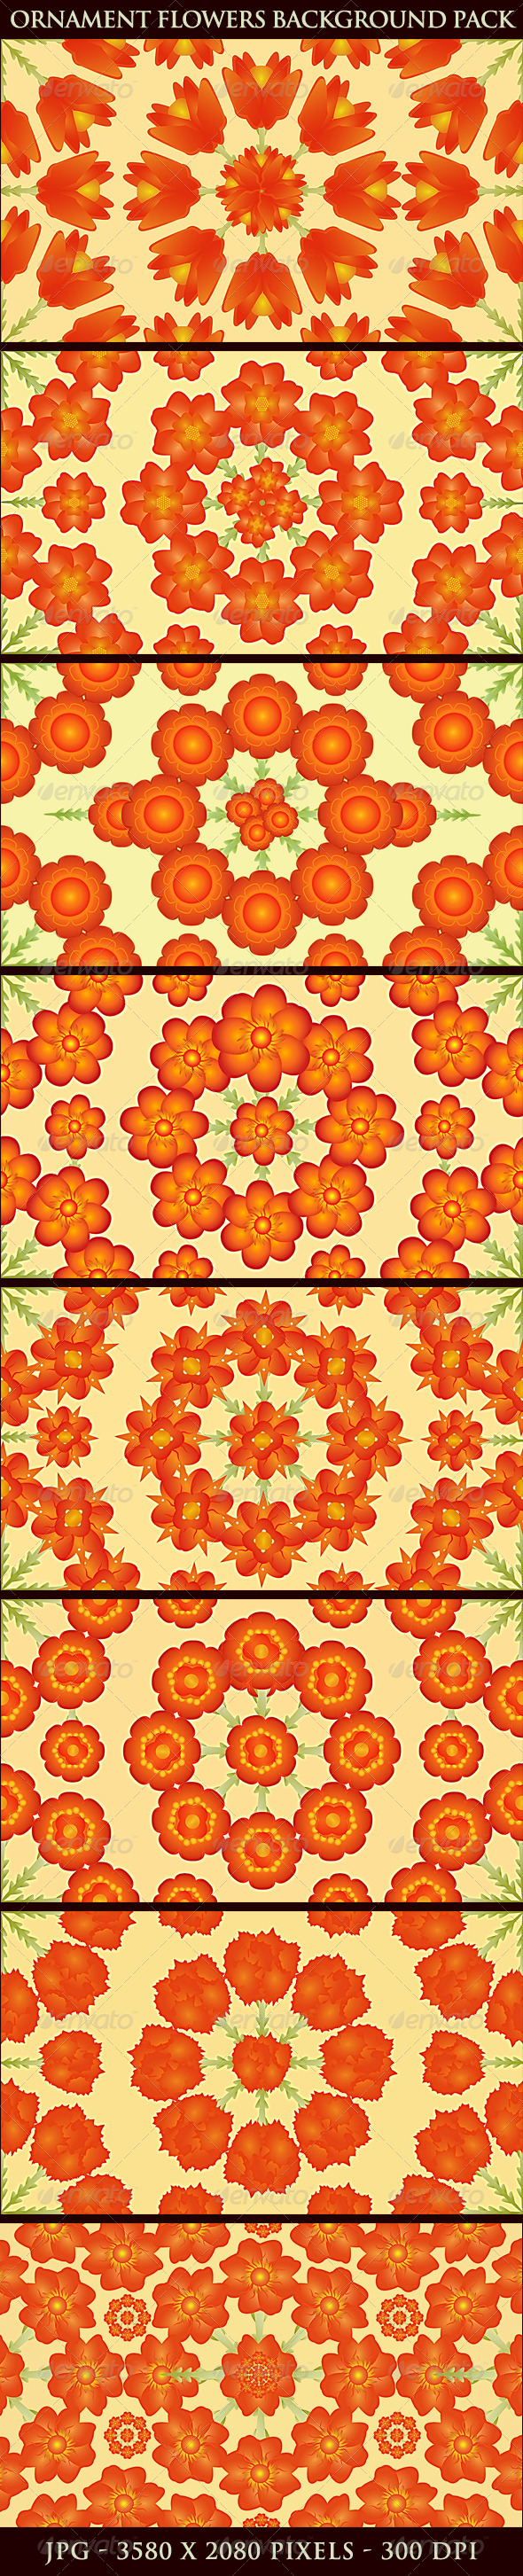 graphicriver ornament pattern flowers backgrounds pack 5343663 stock